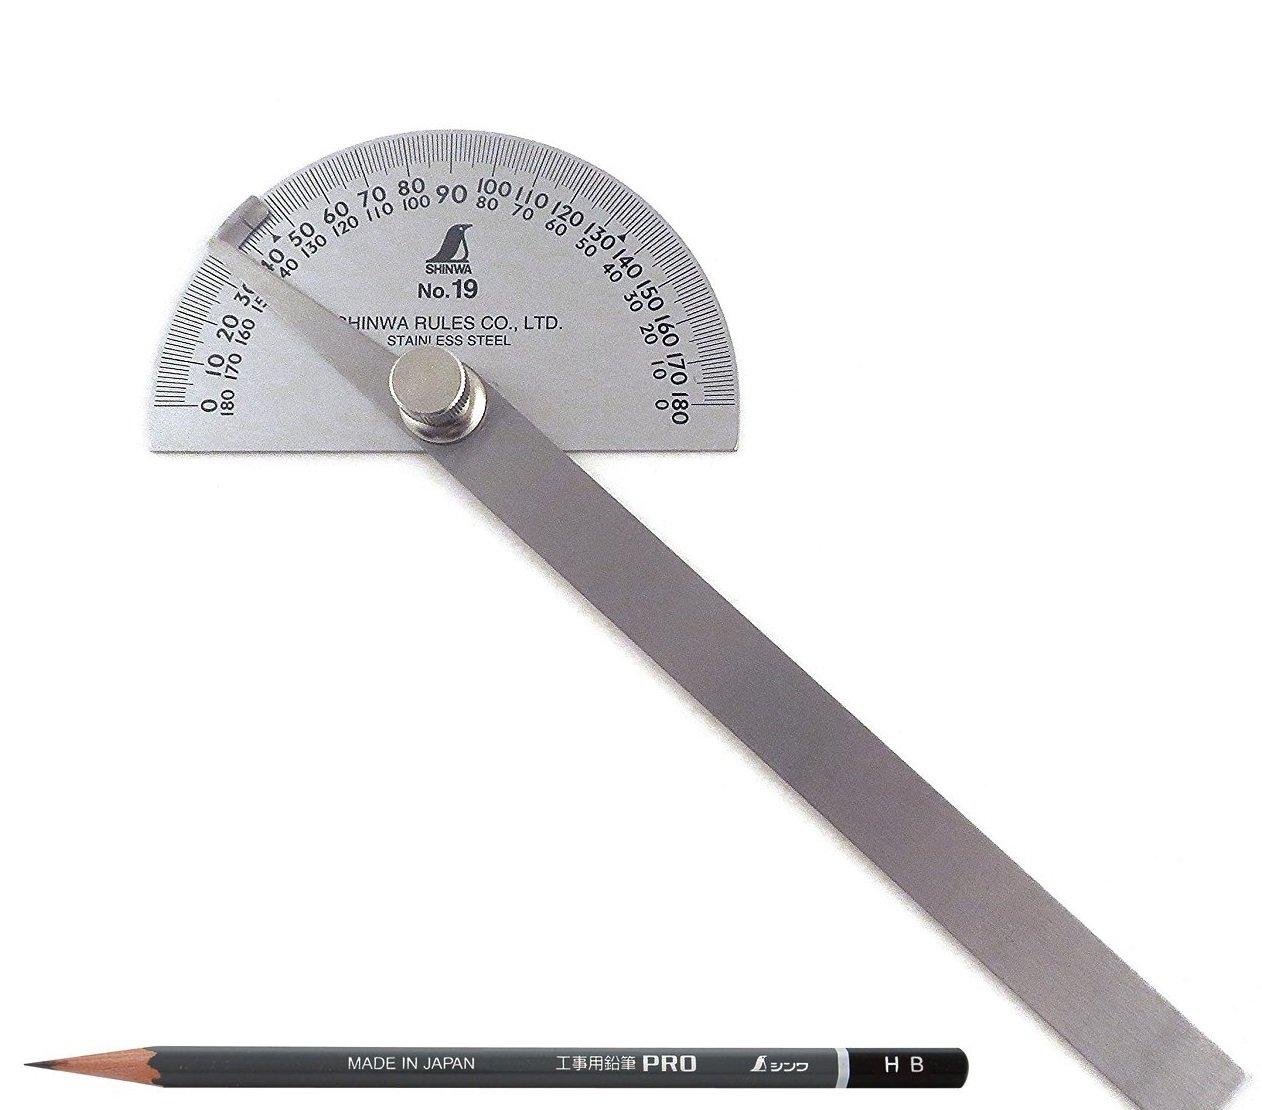 Shinwa Japanese #19 Stainless Steel Protractor 0-180 degrees with Round Head + Pencil for measurement work Pro HB 3 pcs 78519